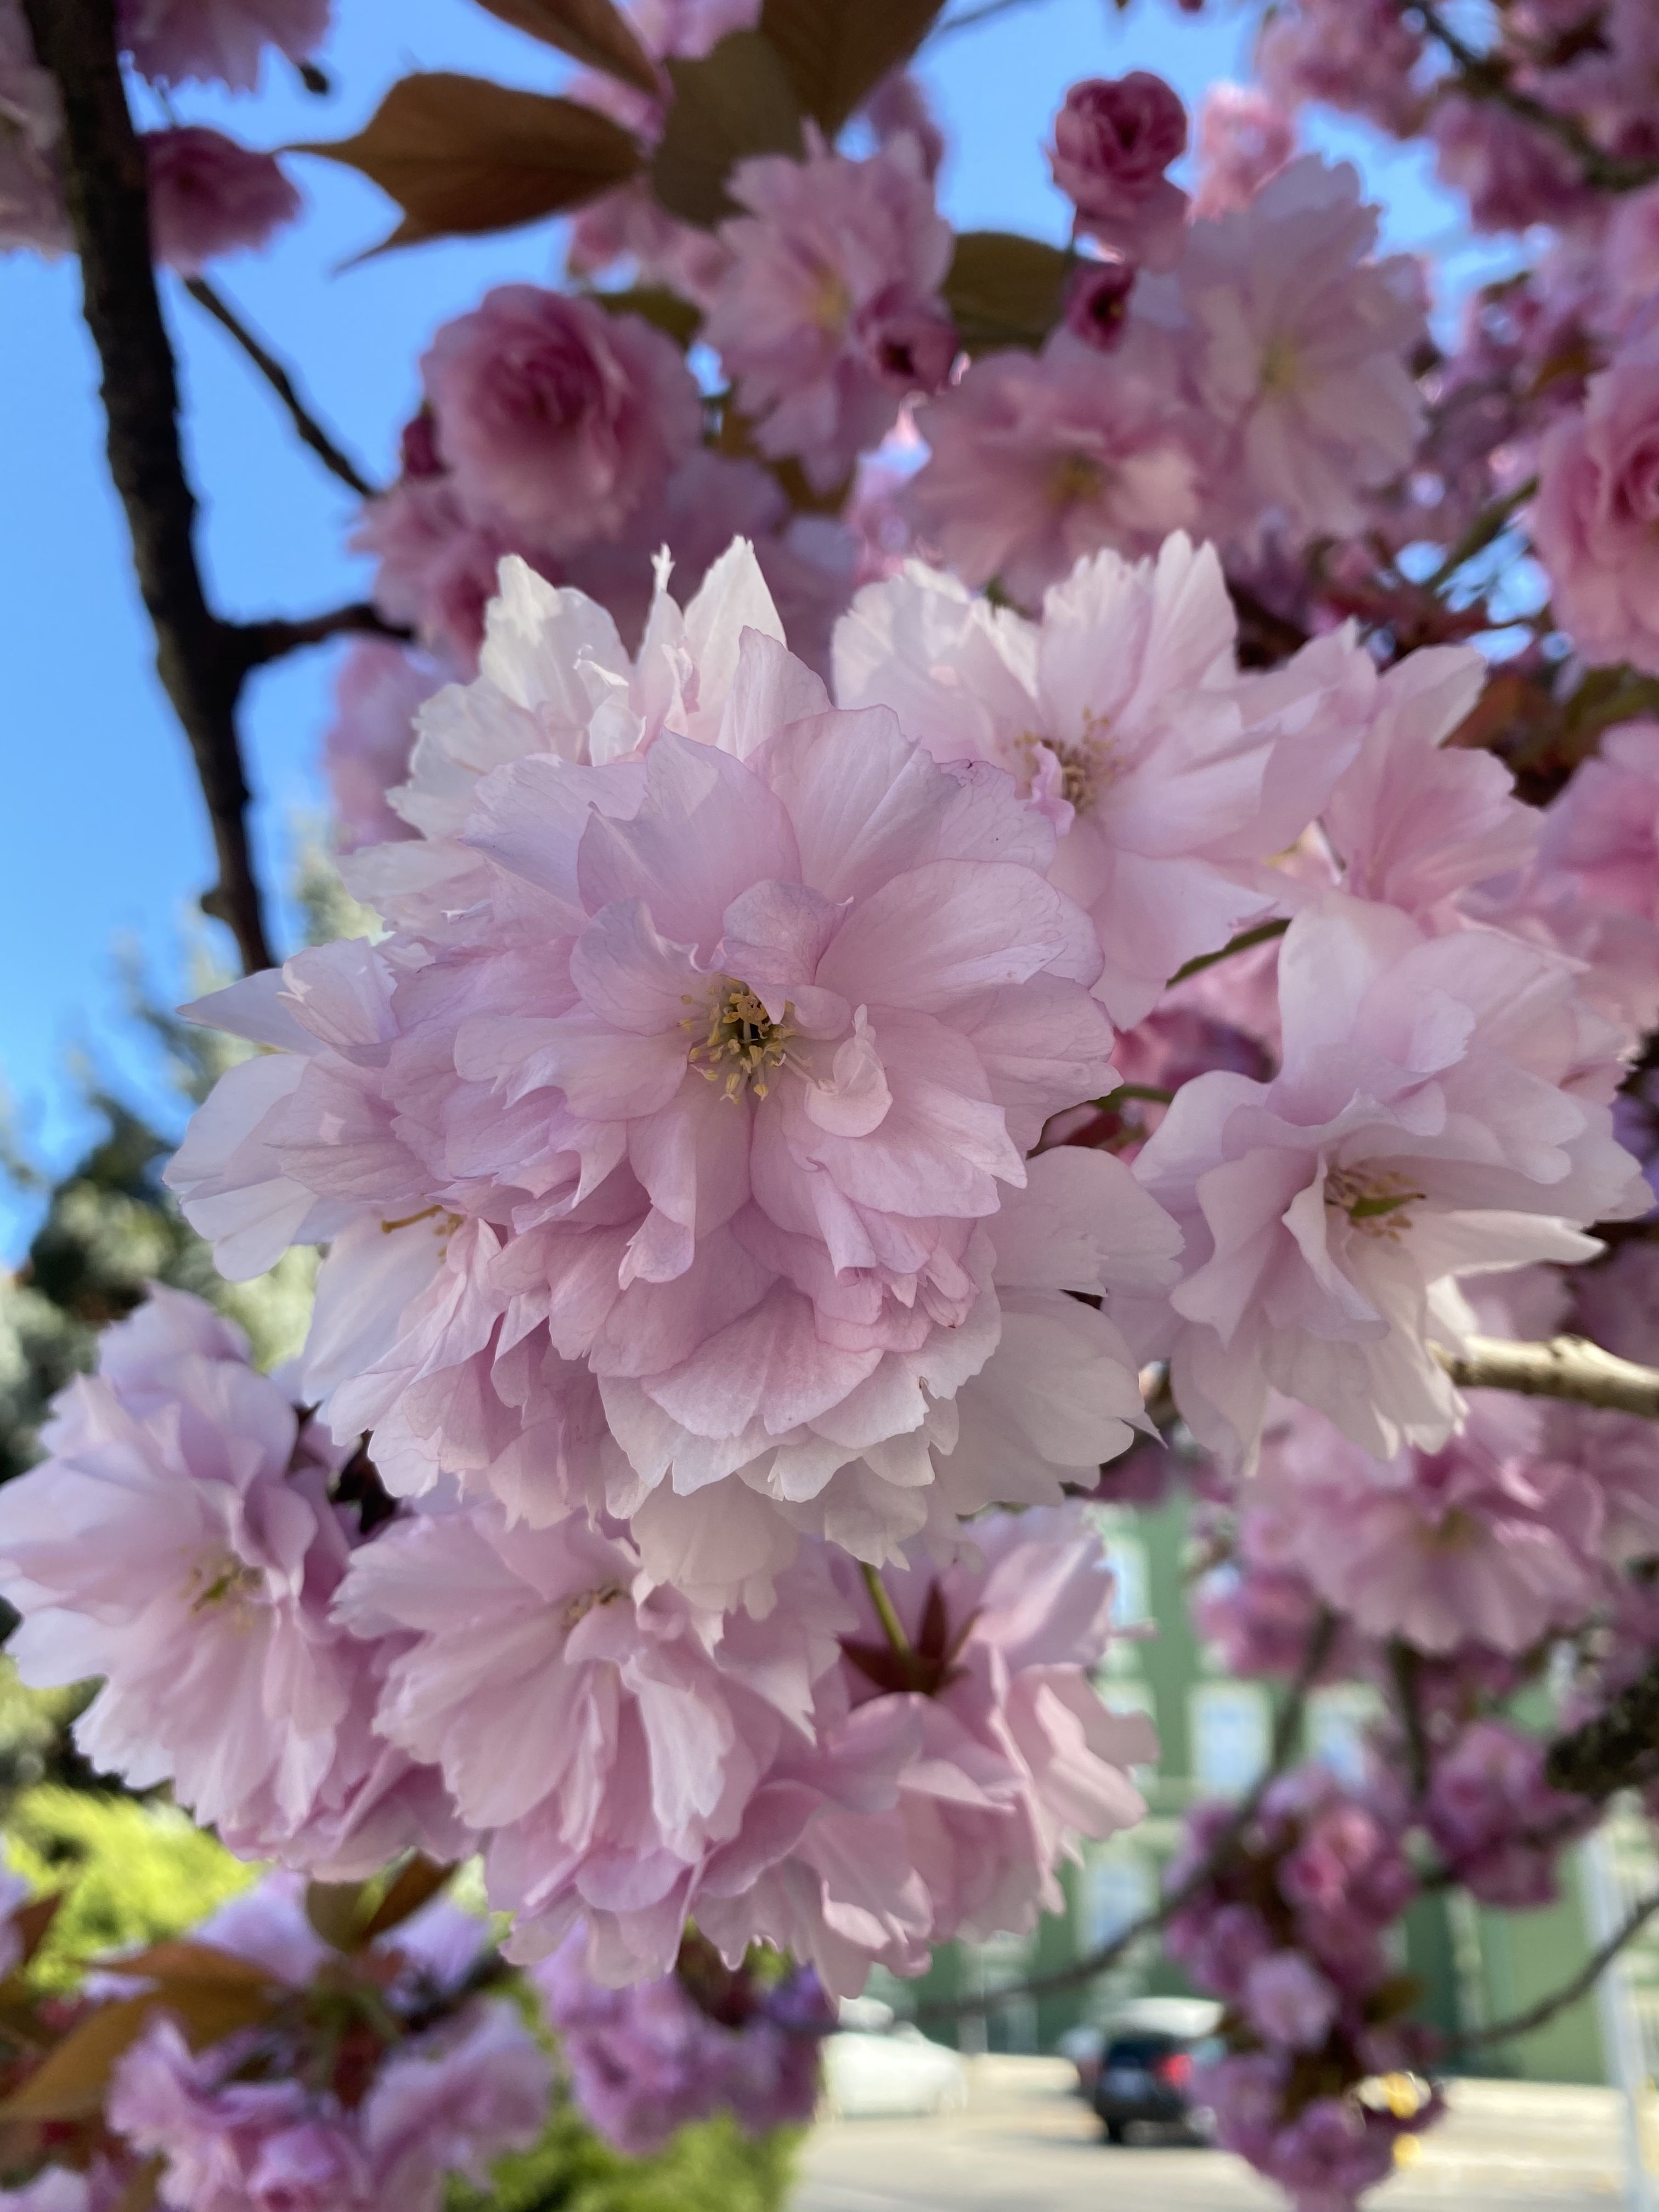 Pin By Ni Putu Hany Yulia On Cherry Blossoms In 2020 Flowers Blossom Plants